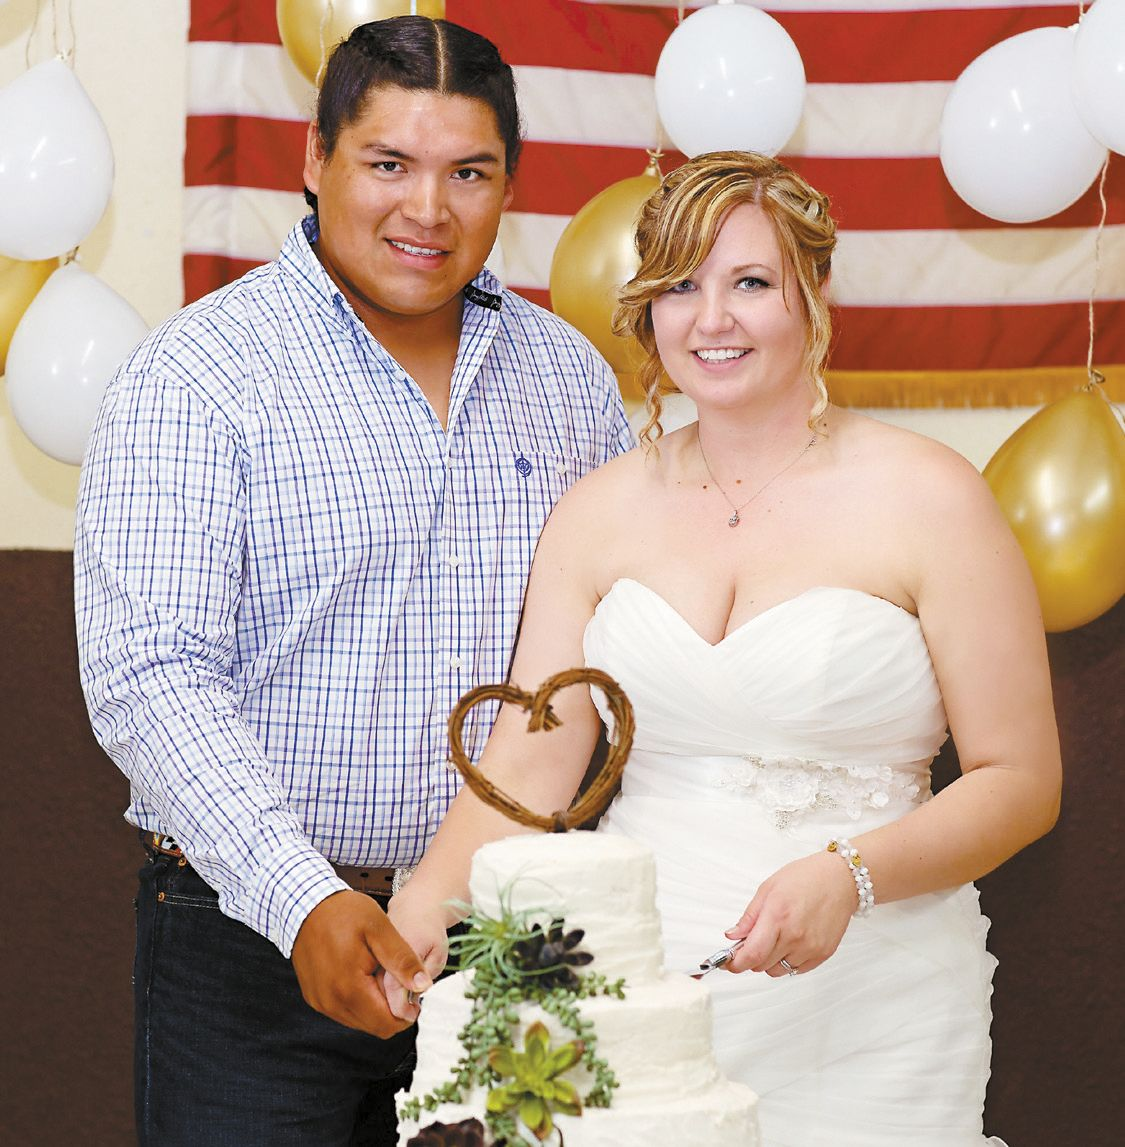 Towell & Candy Exchange Vows